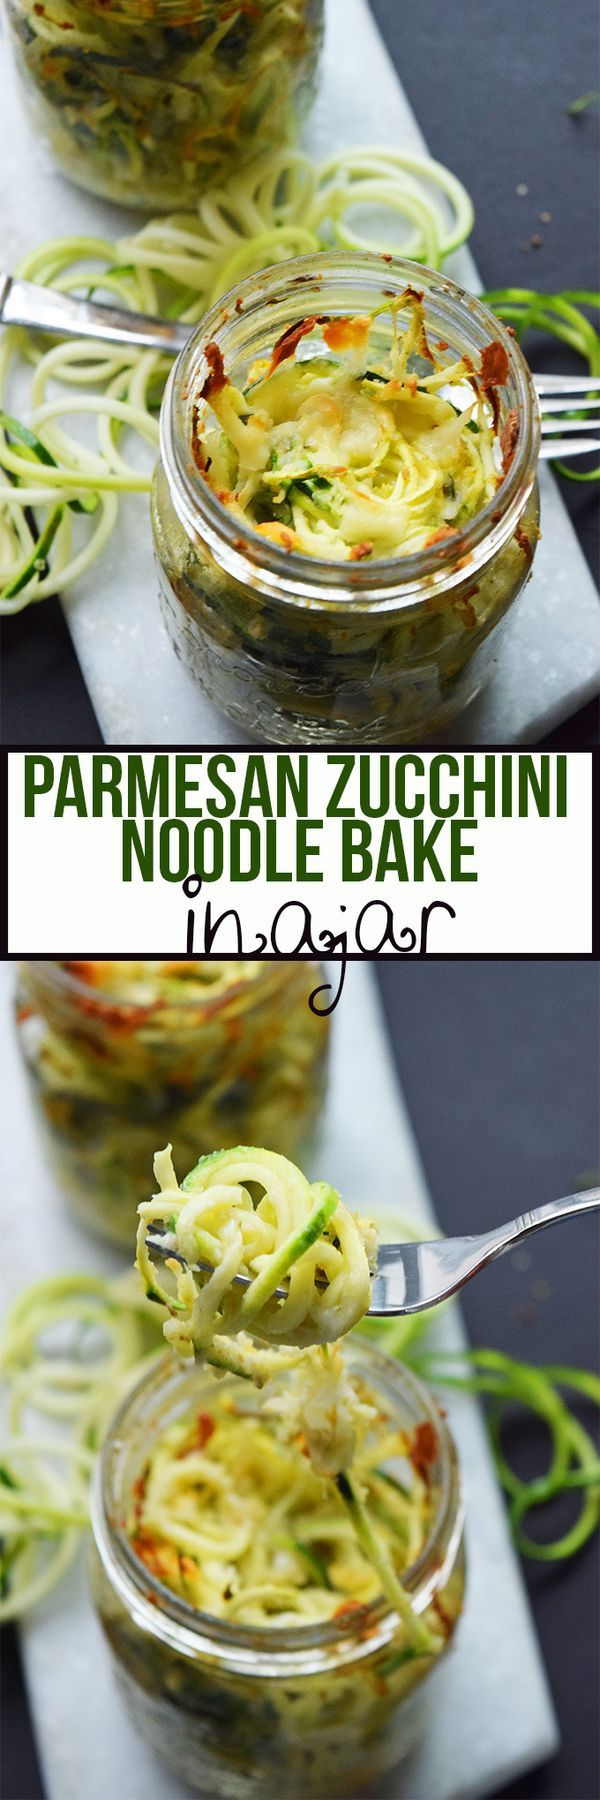 Made with only 5 ingredients, this simple Parmesan Zucchini Noodle Bake In A Jar is the perfect summer side dish. It's portable, too!